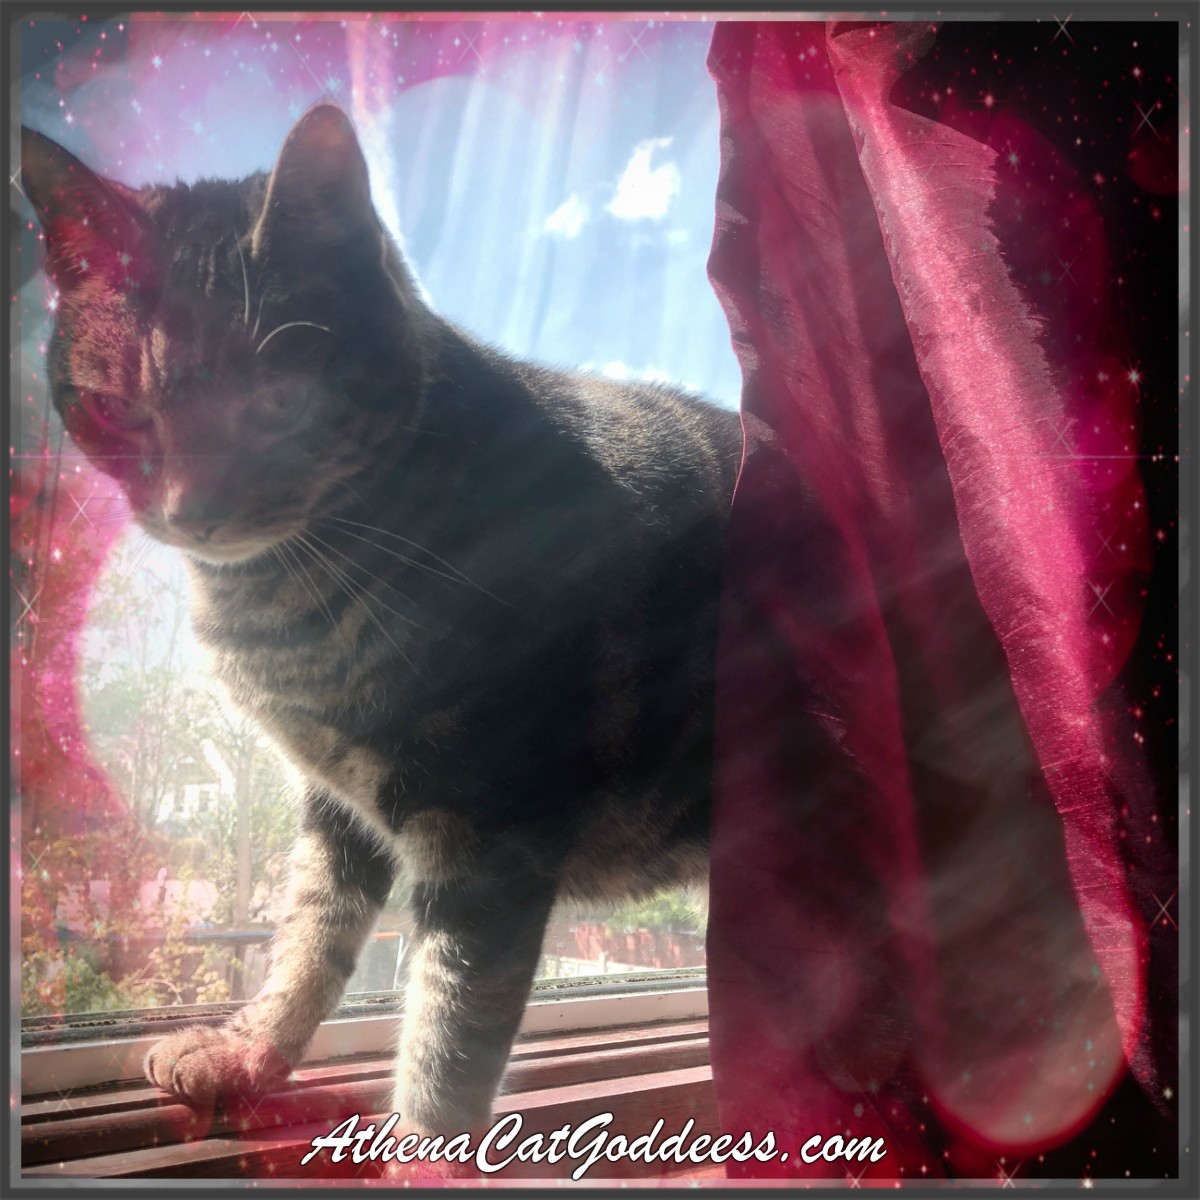 May The 4th Be With You Cat: Athena Cat Goddess Wise Kitty: Caturday Art: May The 4th